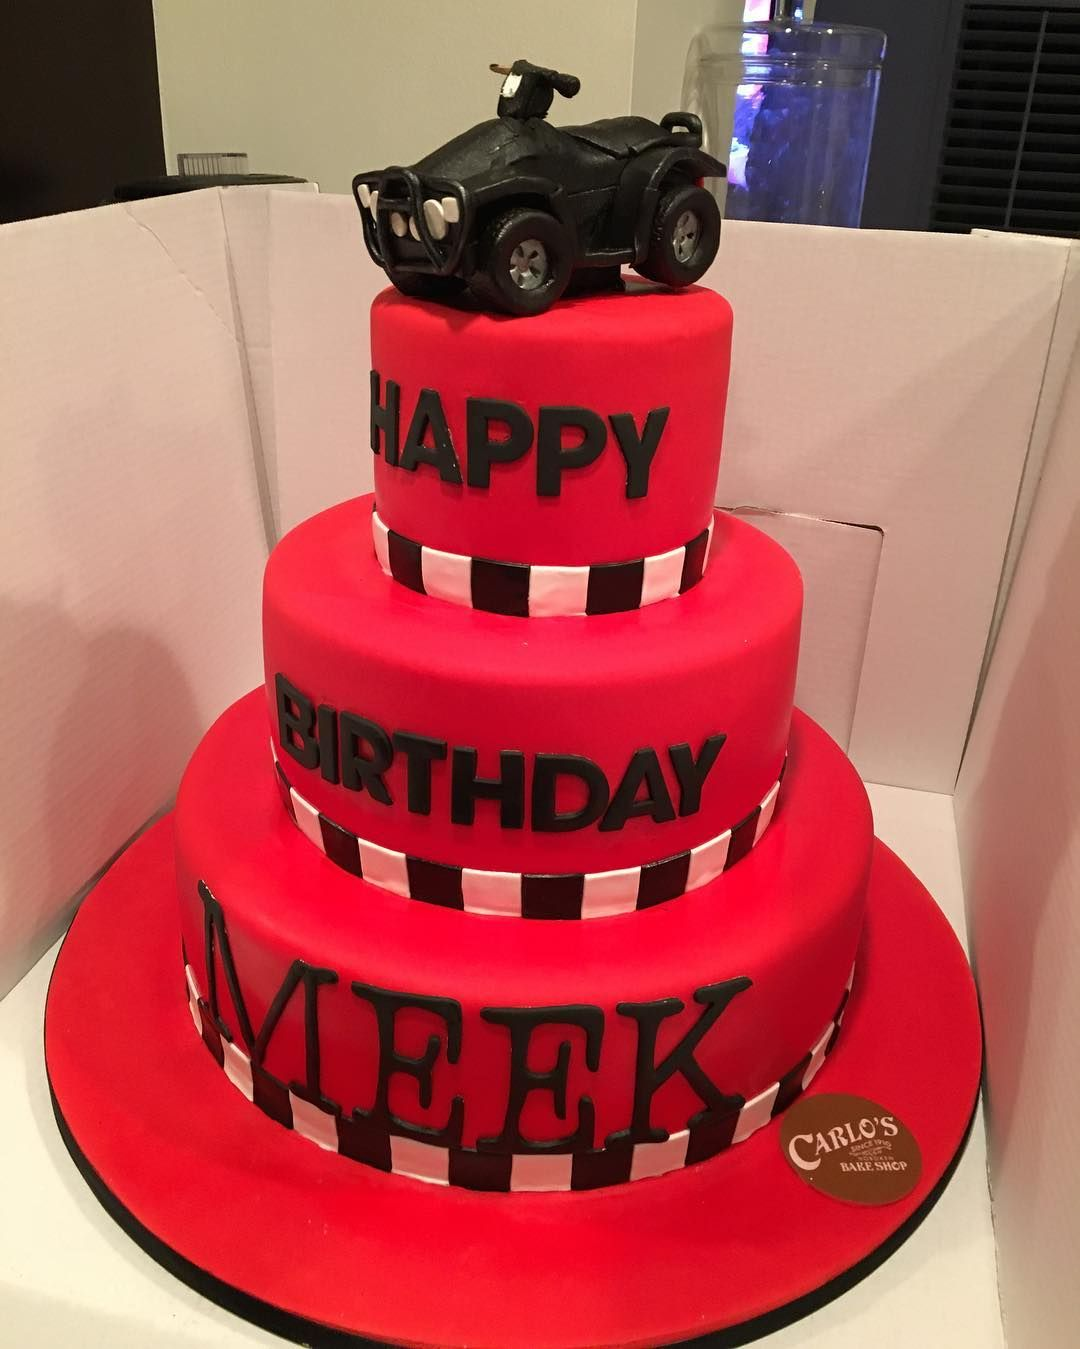 This Was His Other Cake I Asked For A 4 Wheeler Made Out